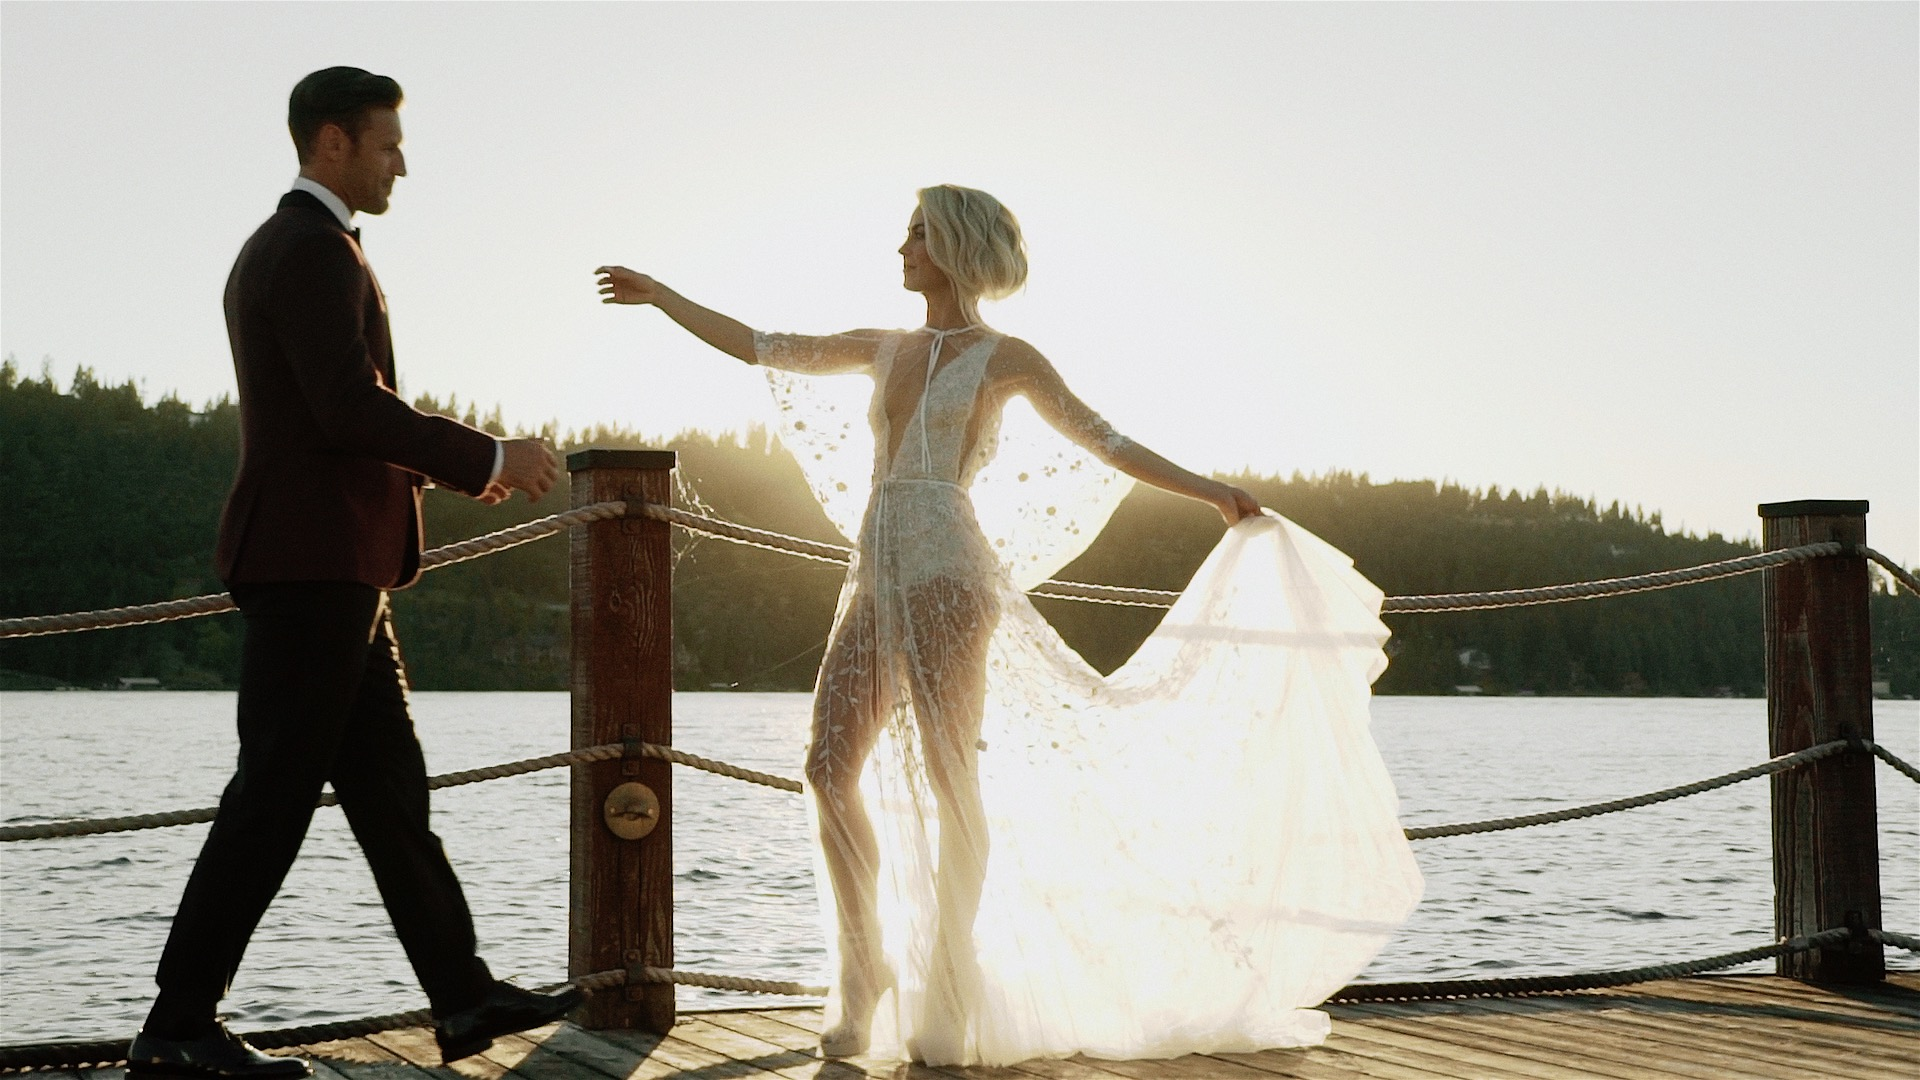 The Wedding of Julianne Hough and Brooks Laich